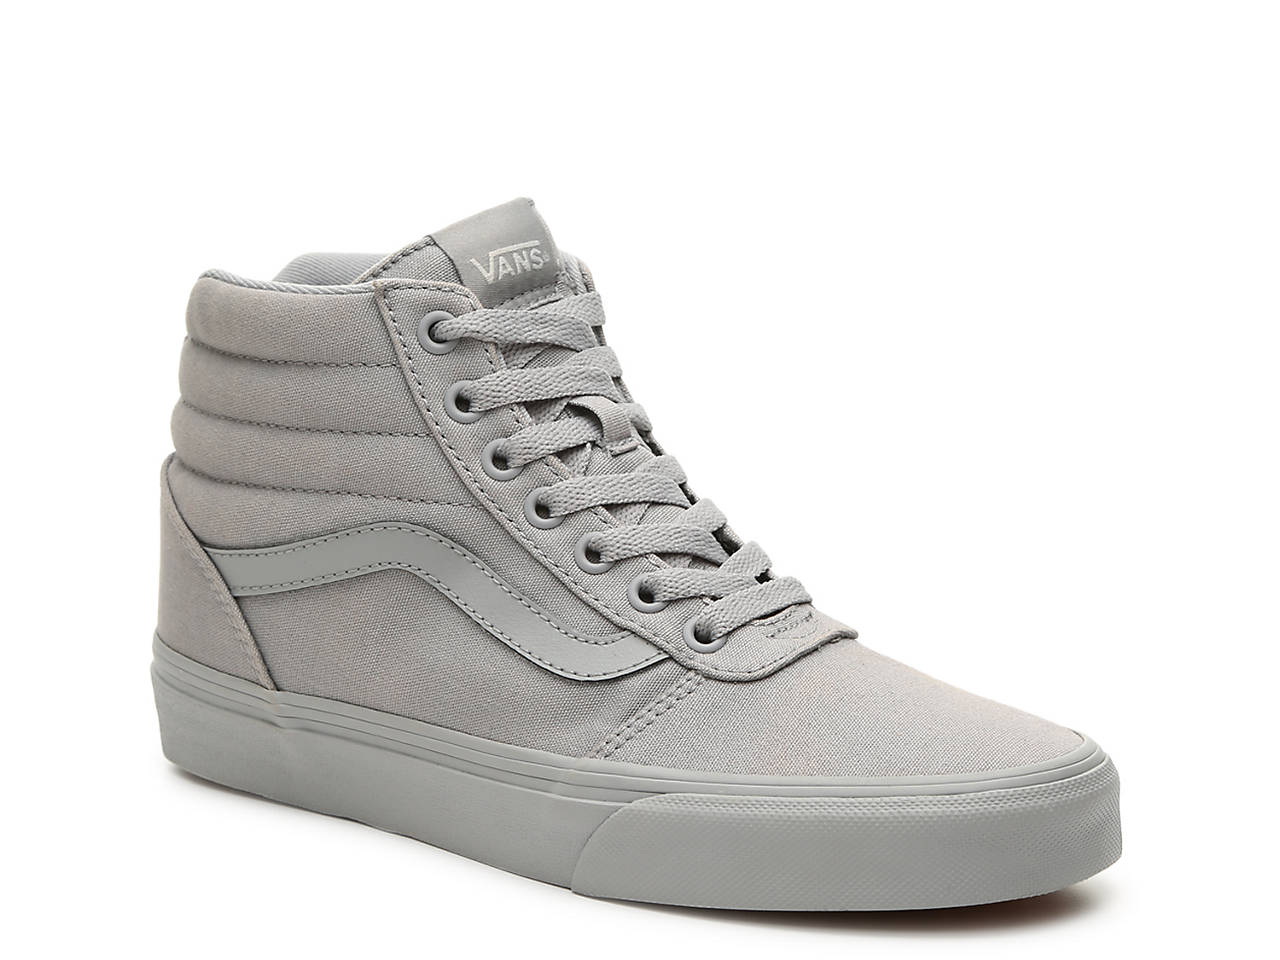 0b796a9e44b Vans Ward Hi High-Top Sneaker - Women s Women s Shoes